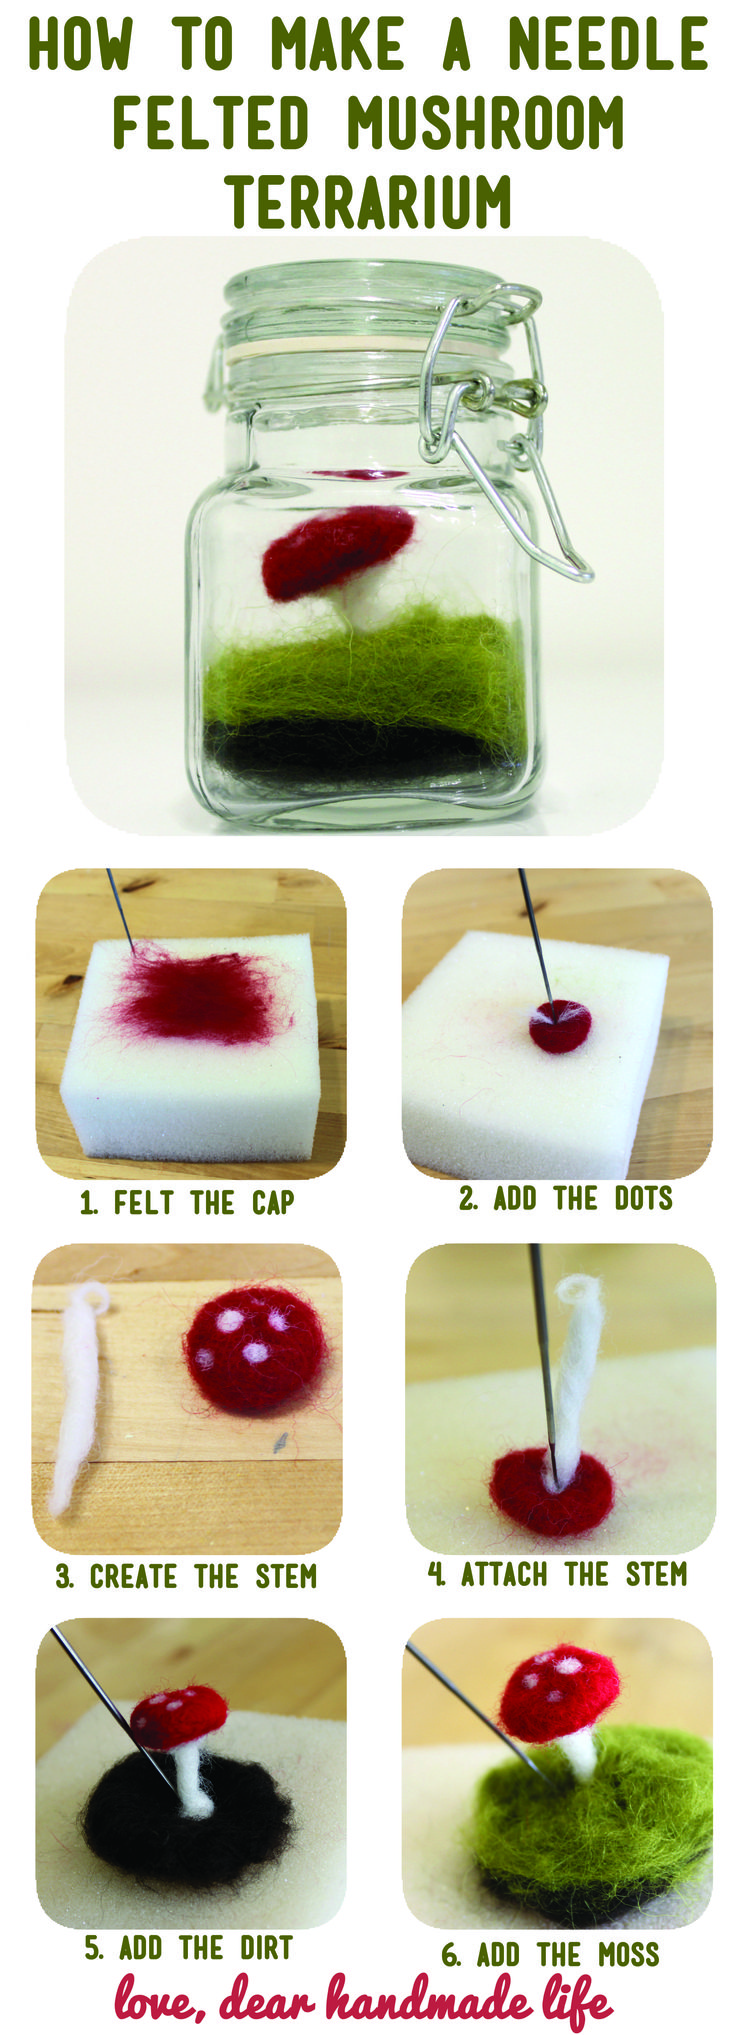 how-to-make-needle-felted-mushroom-terrarium-dear-handmade-life-craft-tutorial-diy